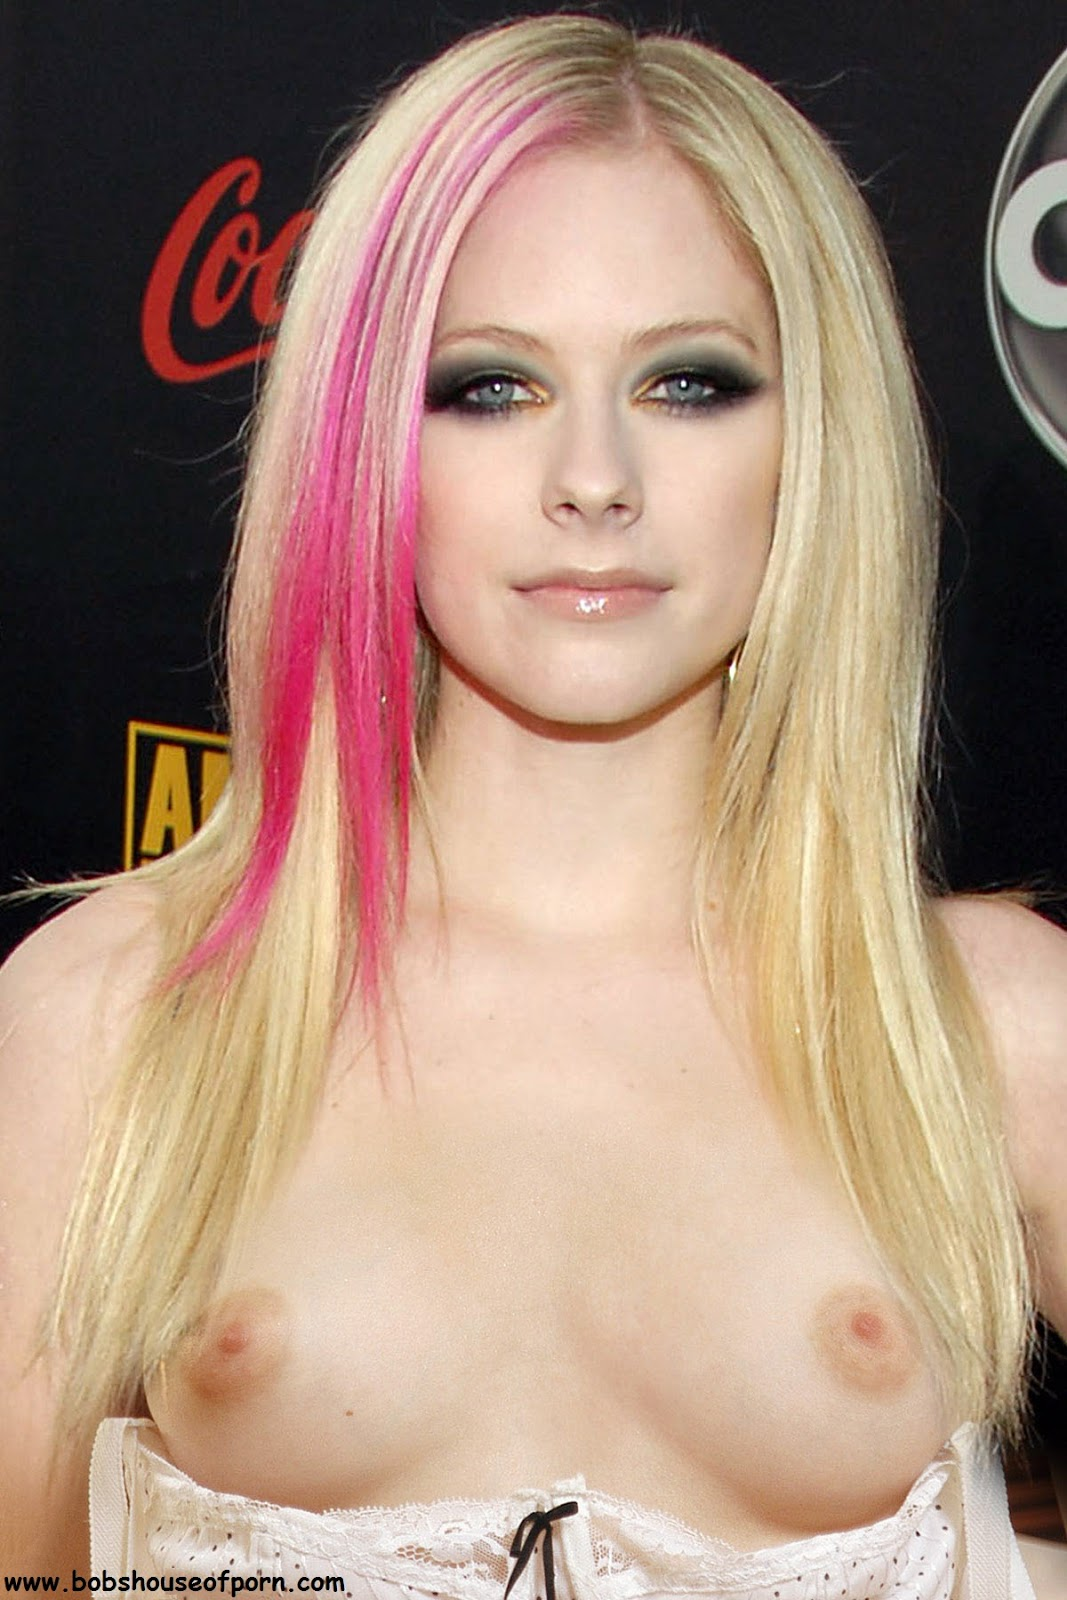 Avril lavign naked GIRL